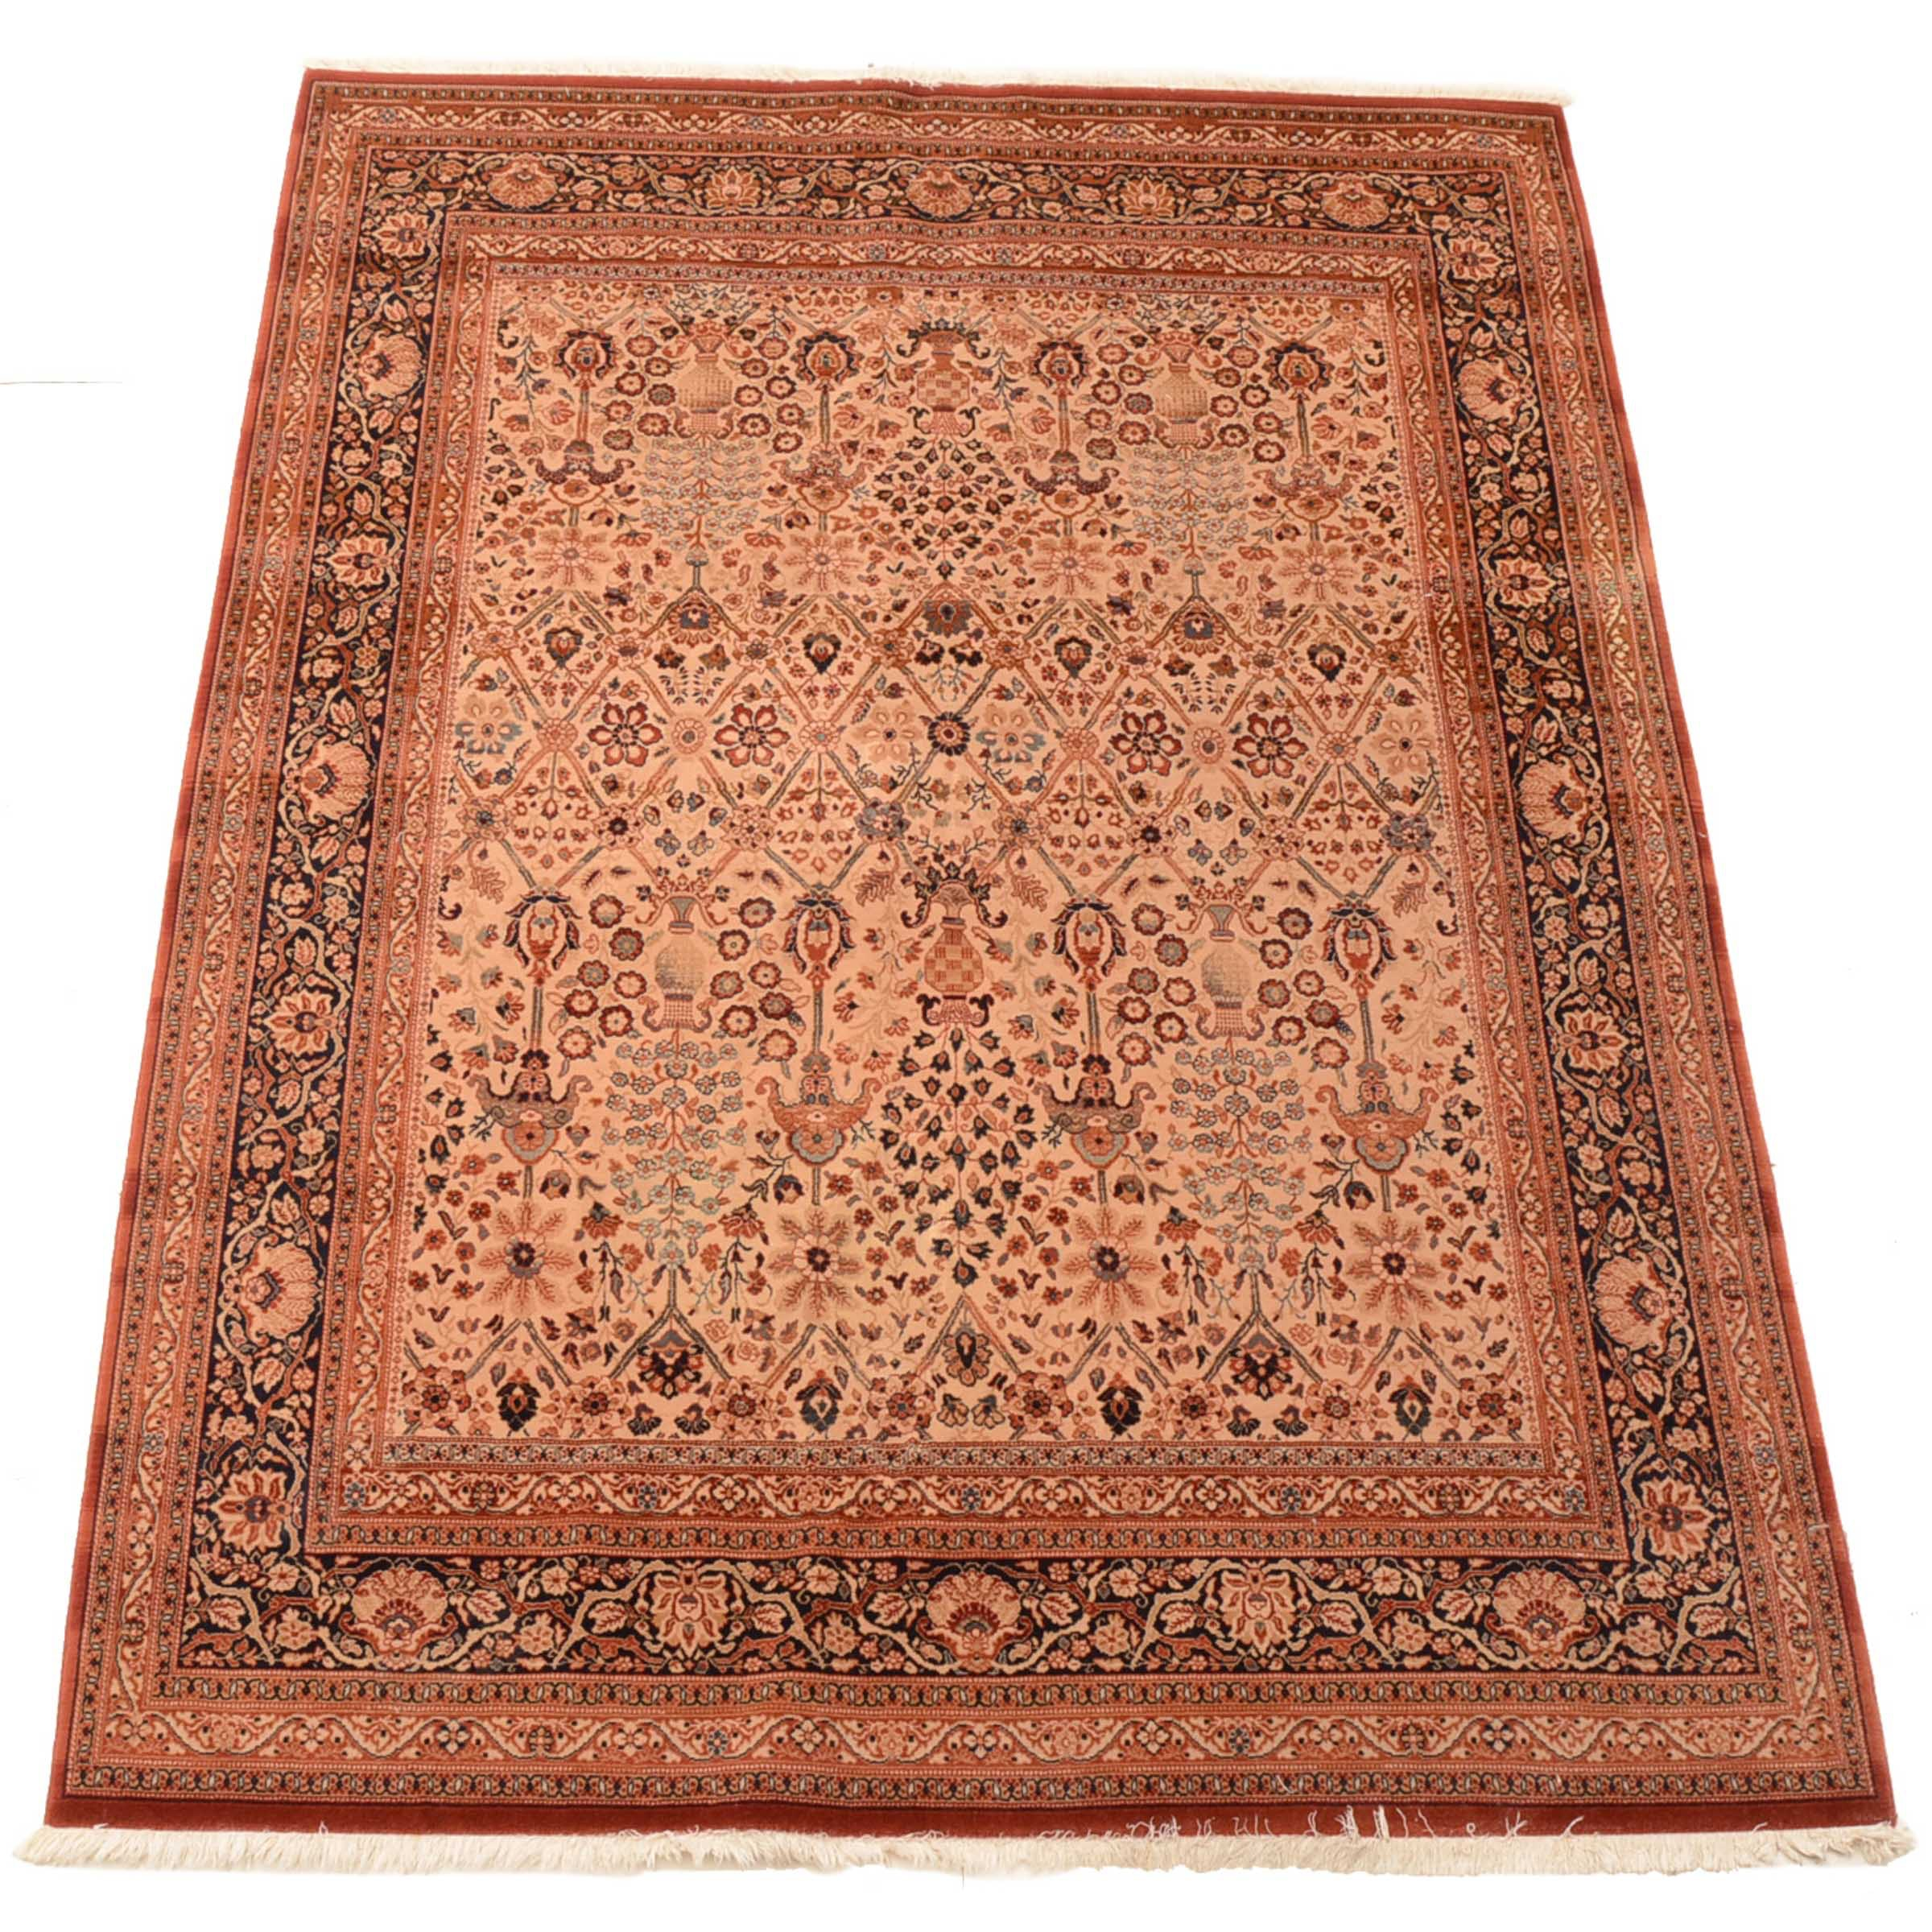 "Karastan ""Antique Tabriz"" Persian Treasures Area Rug"